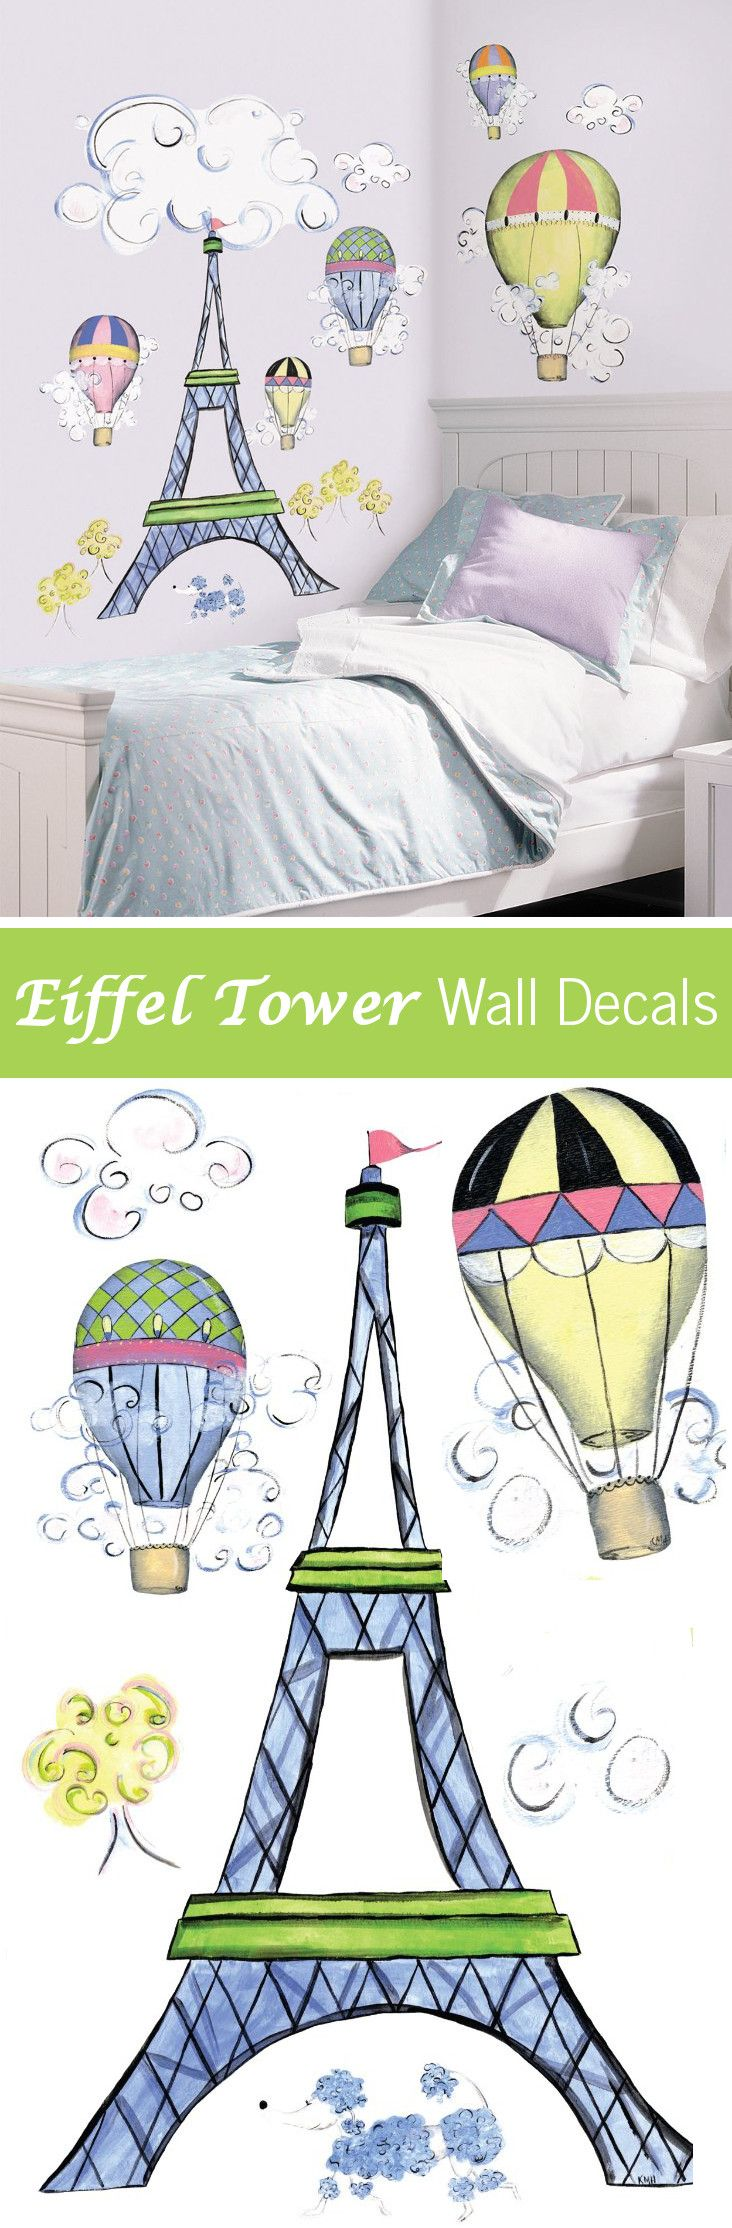 A cute and easy way to decorate a teen or preteen girls bedroom. Paris Eiffel Tower theme. It's so simple too!